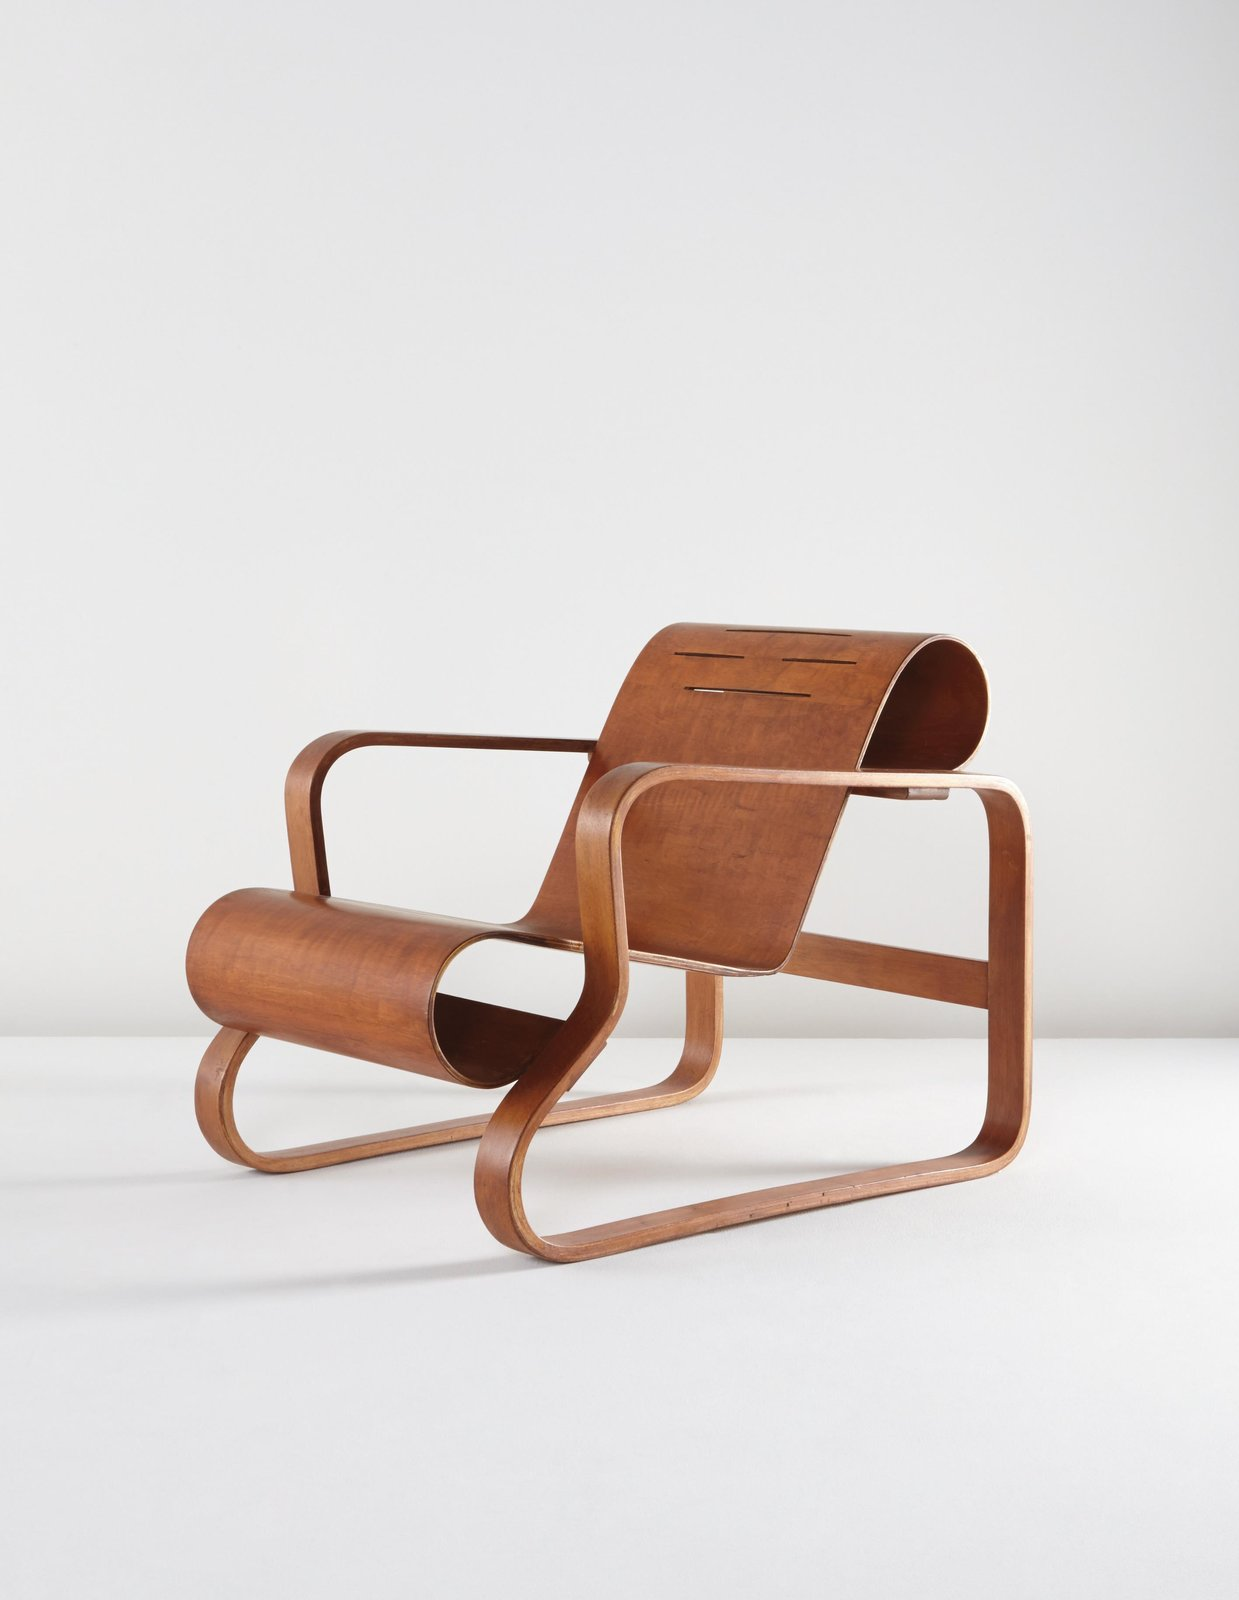 Alvar Aalto, early Paimio armchair, model 41/83C, circa 1935.  Photo Phillips.  lounge chairs